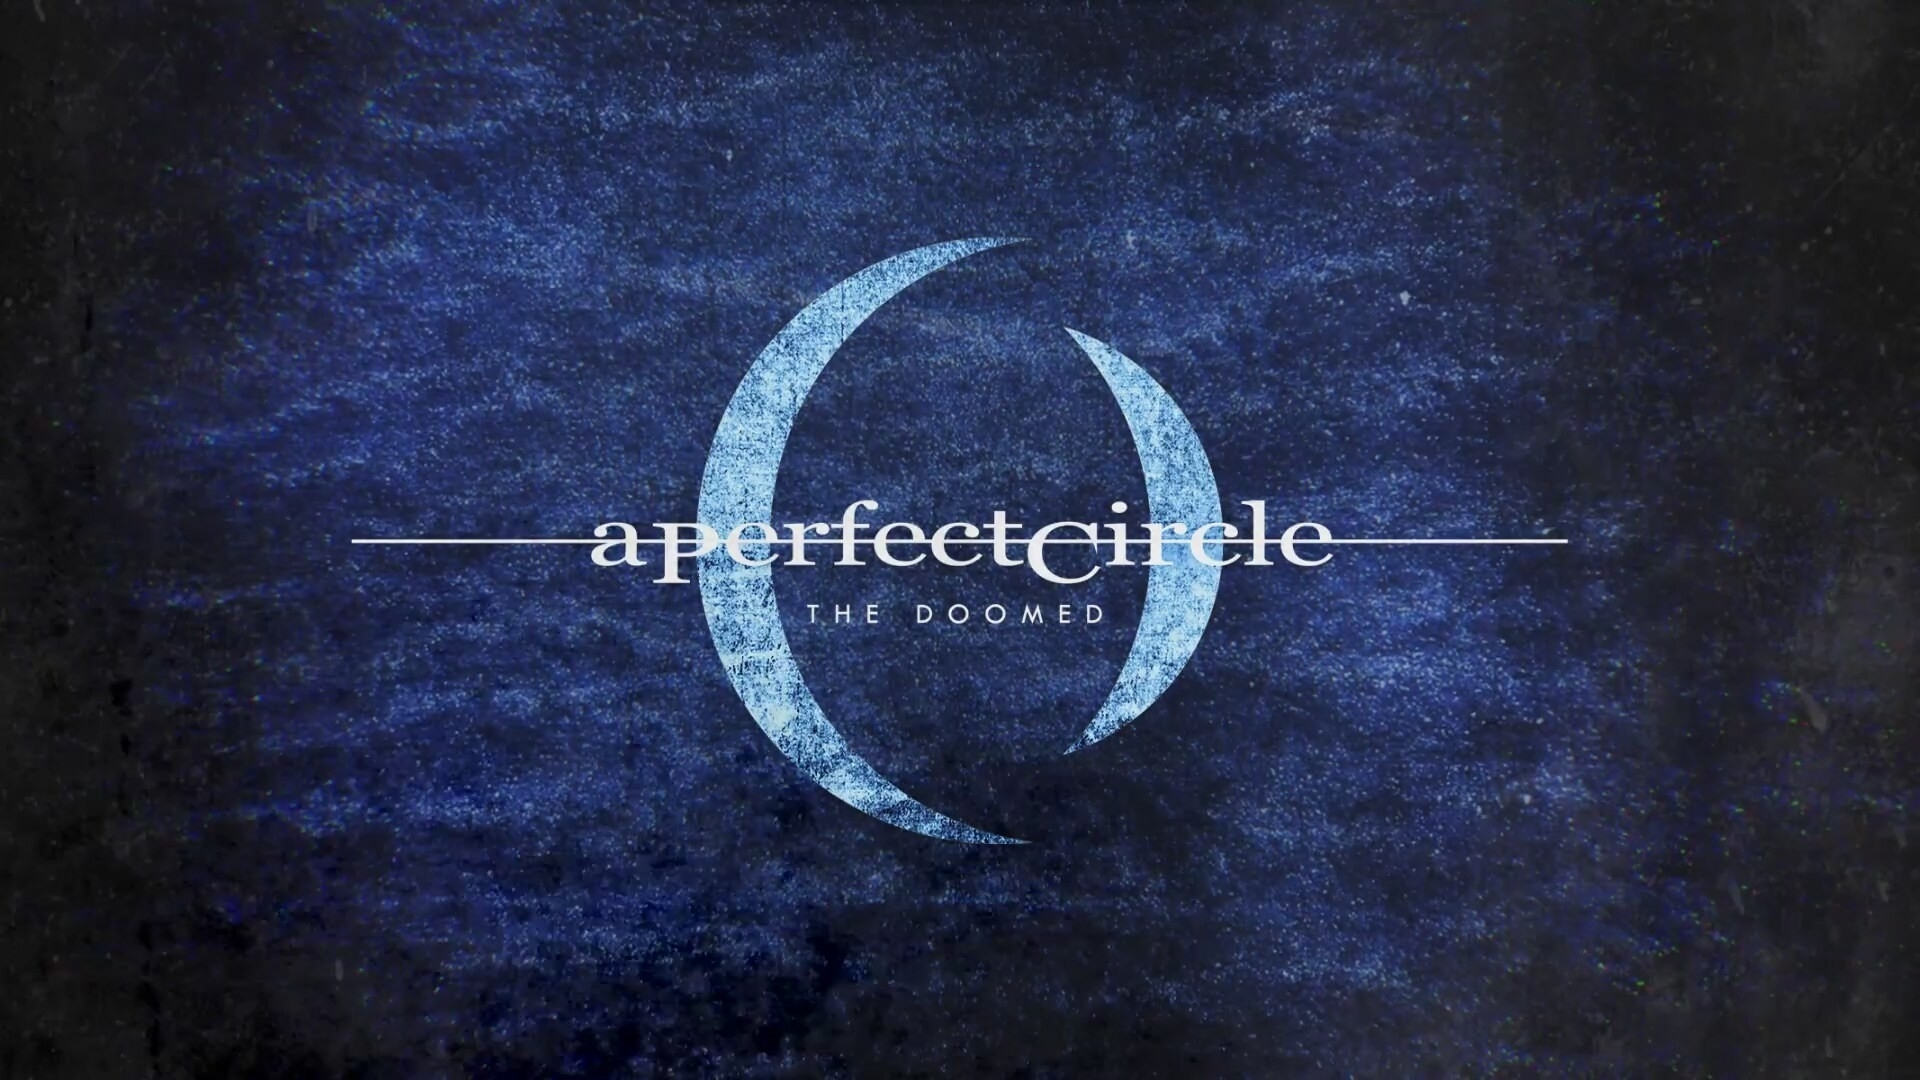 a perfect circle wallpaper ·①